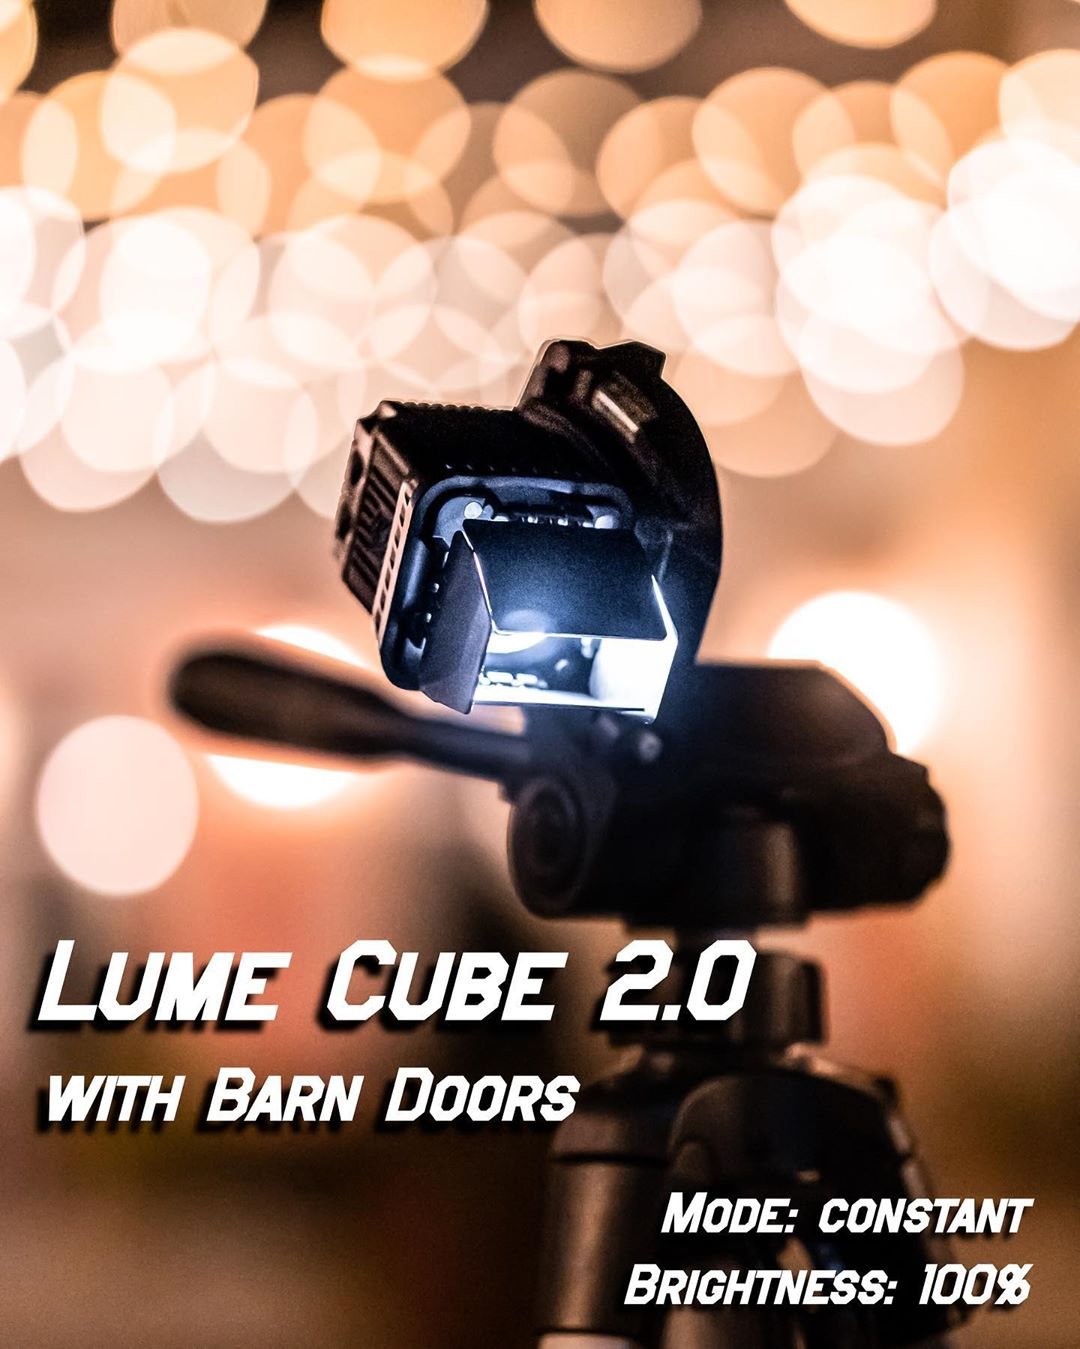 lume cube 2.0 with barn doors attached